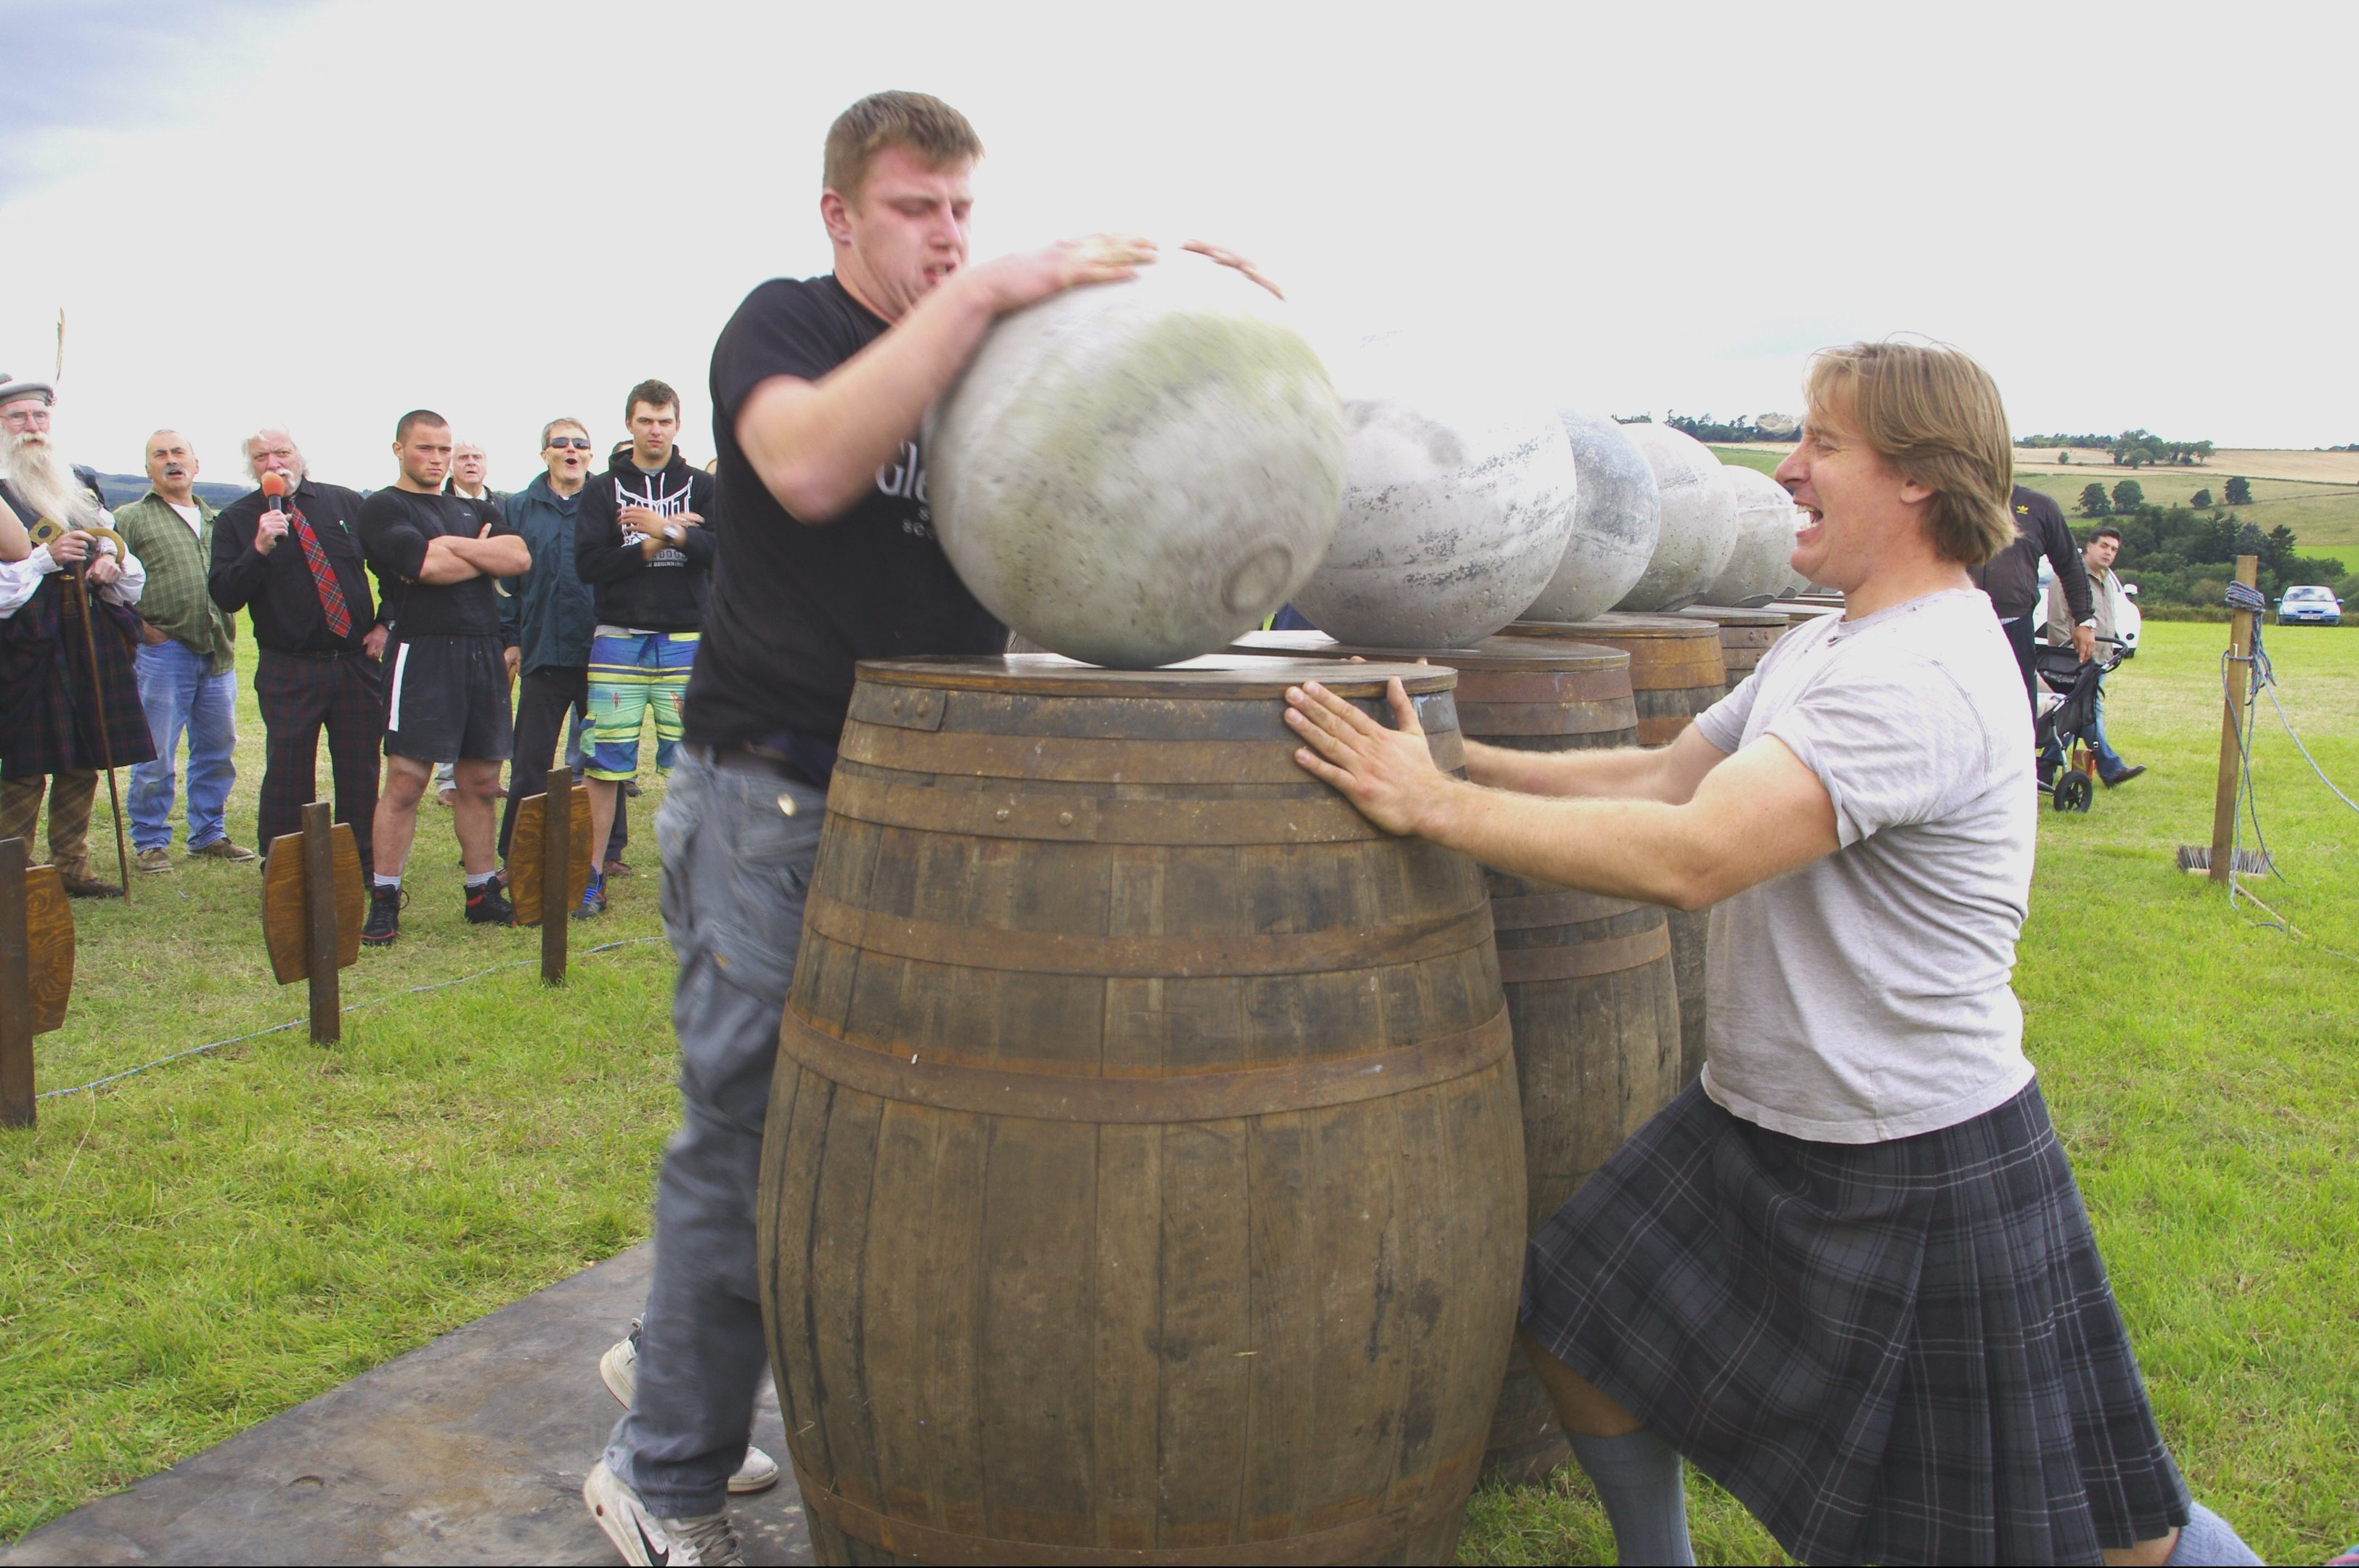 Lorne Colthart lifts the last Ardblair Stone while Charlie Blair Oliphant steadies the barrel at the Blairgowrie Highland Games.